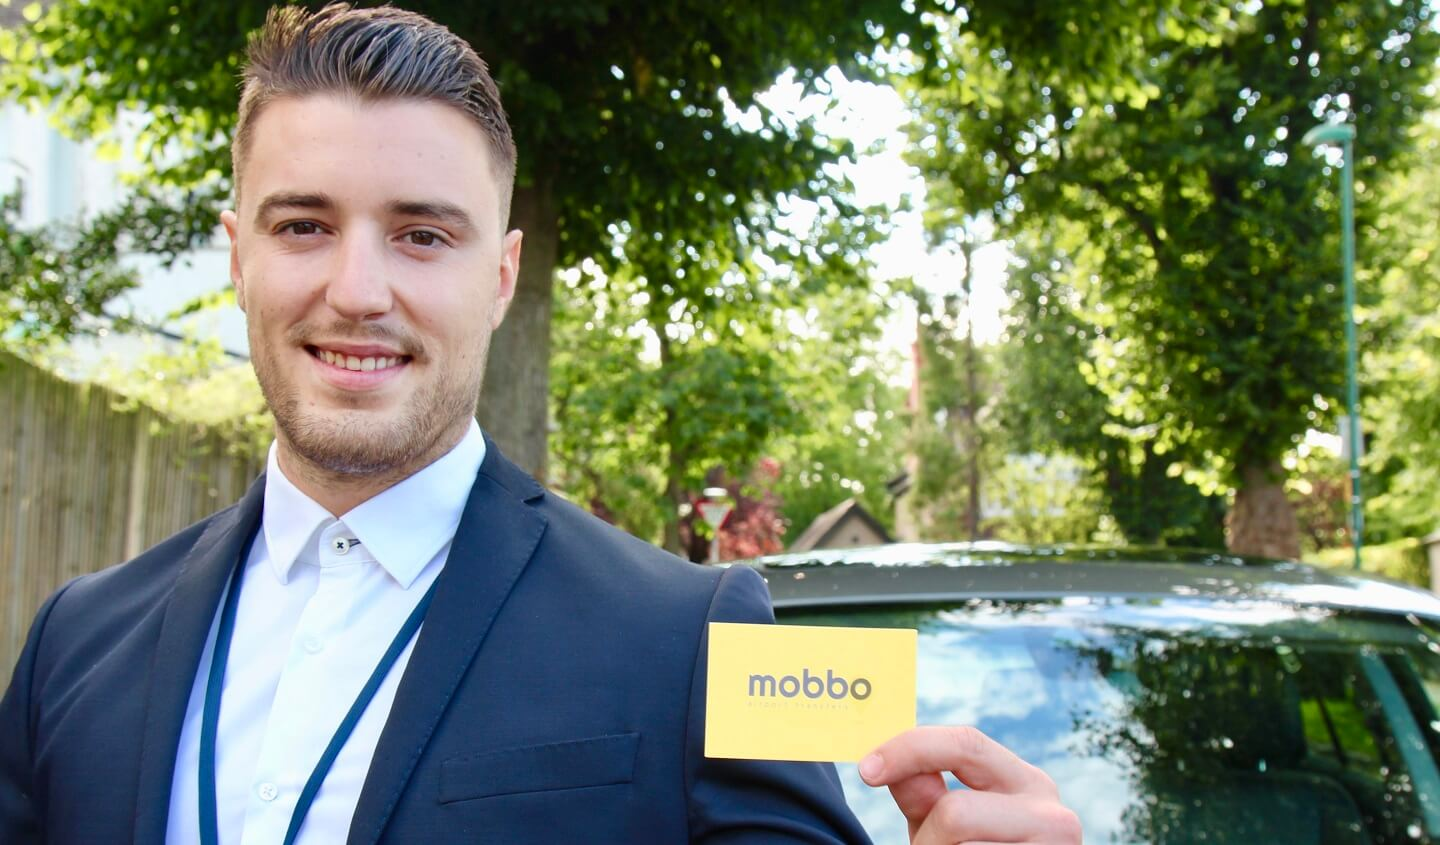 Mobbo Taxi Service